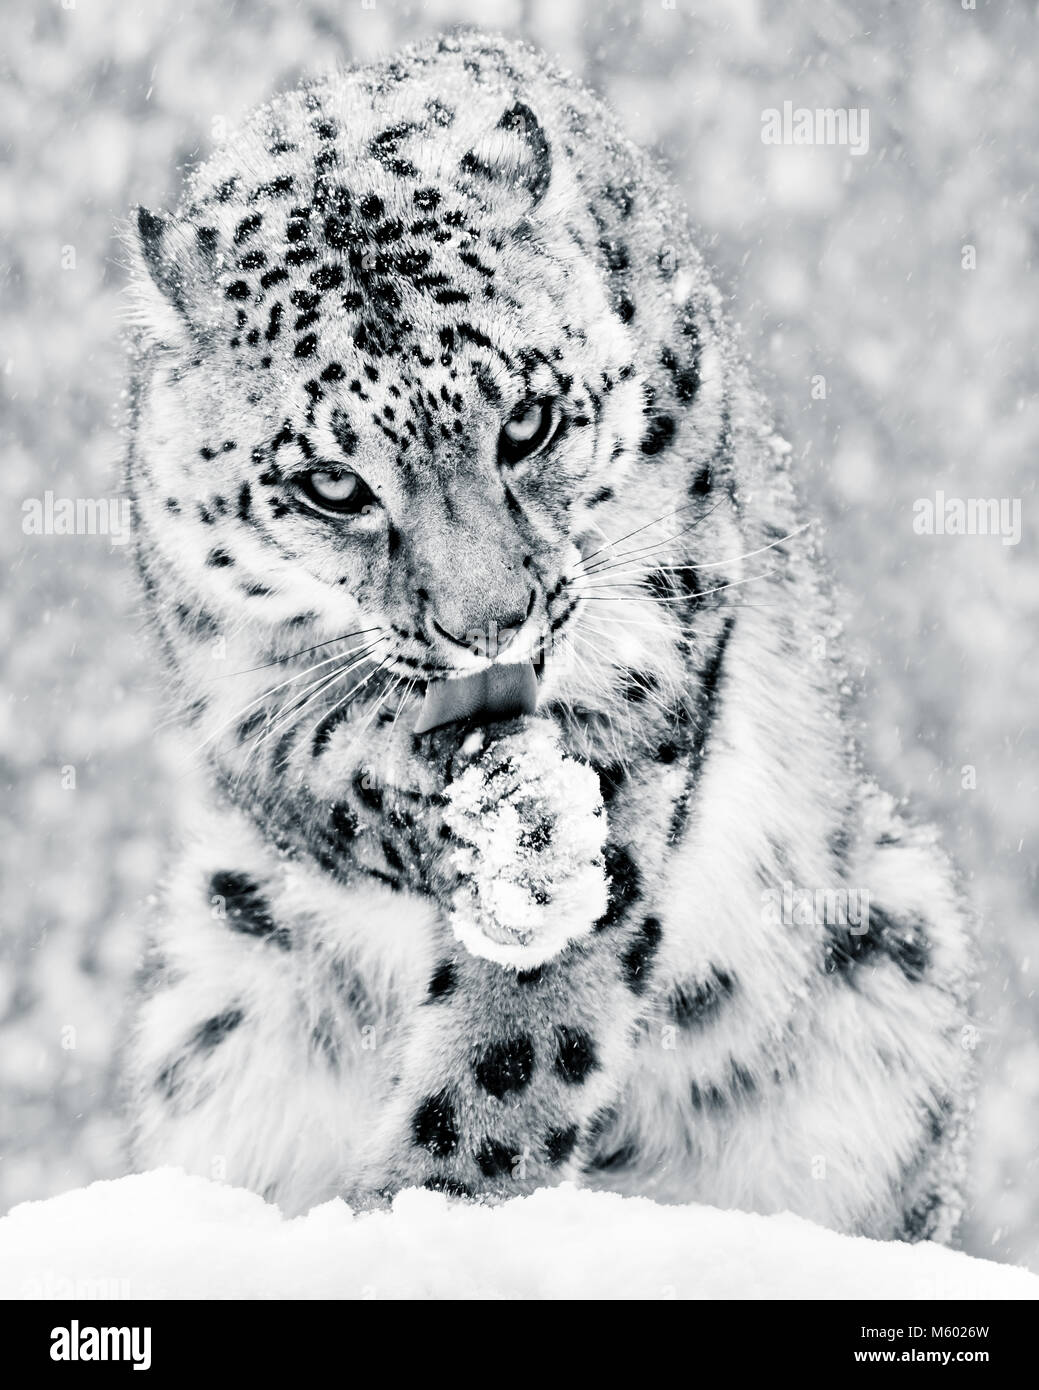 Snow Leopard in Snow Storm IV BW - Stock Image